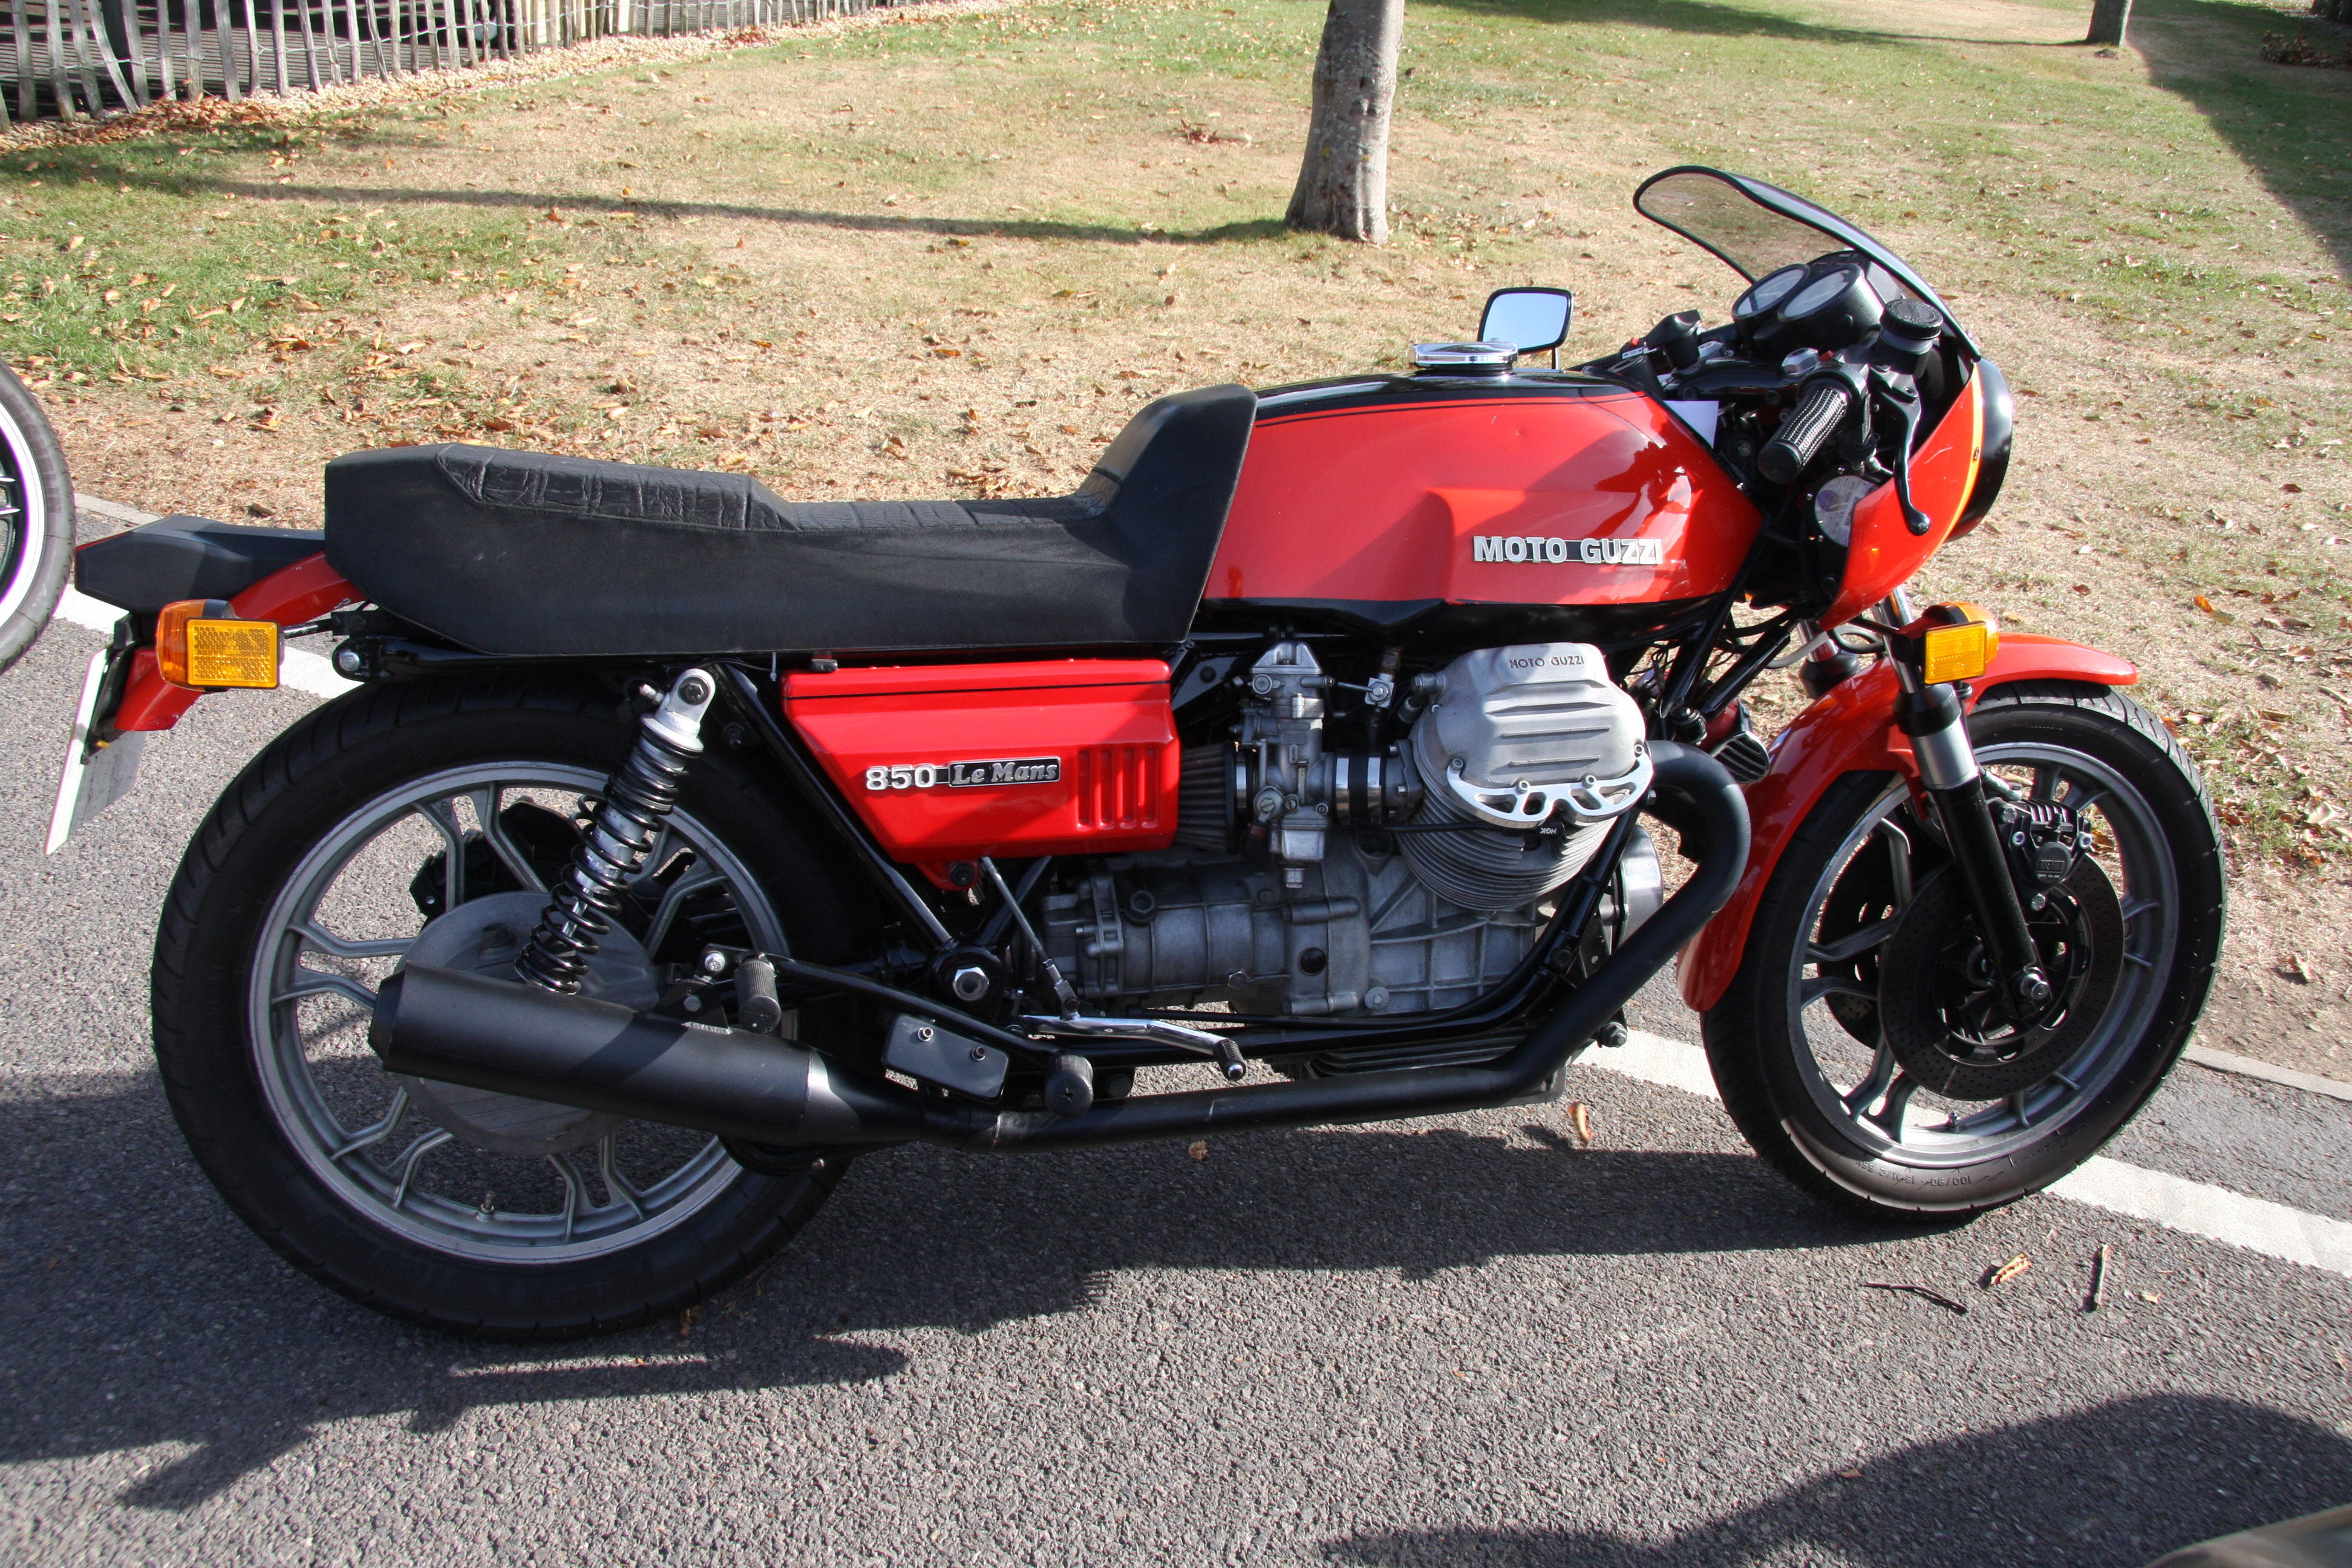 Moto Guzzi California 75 images #108456